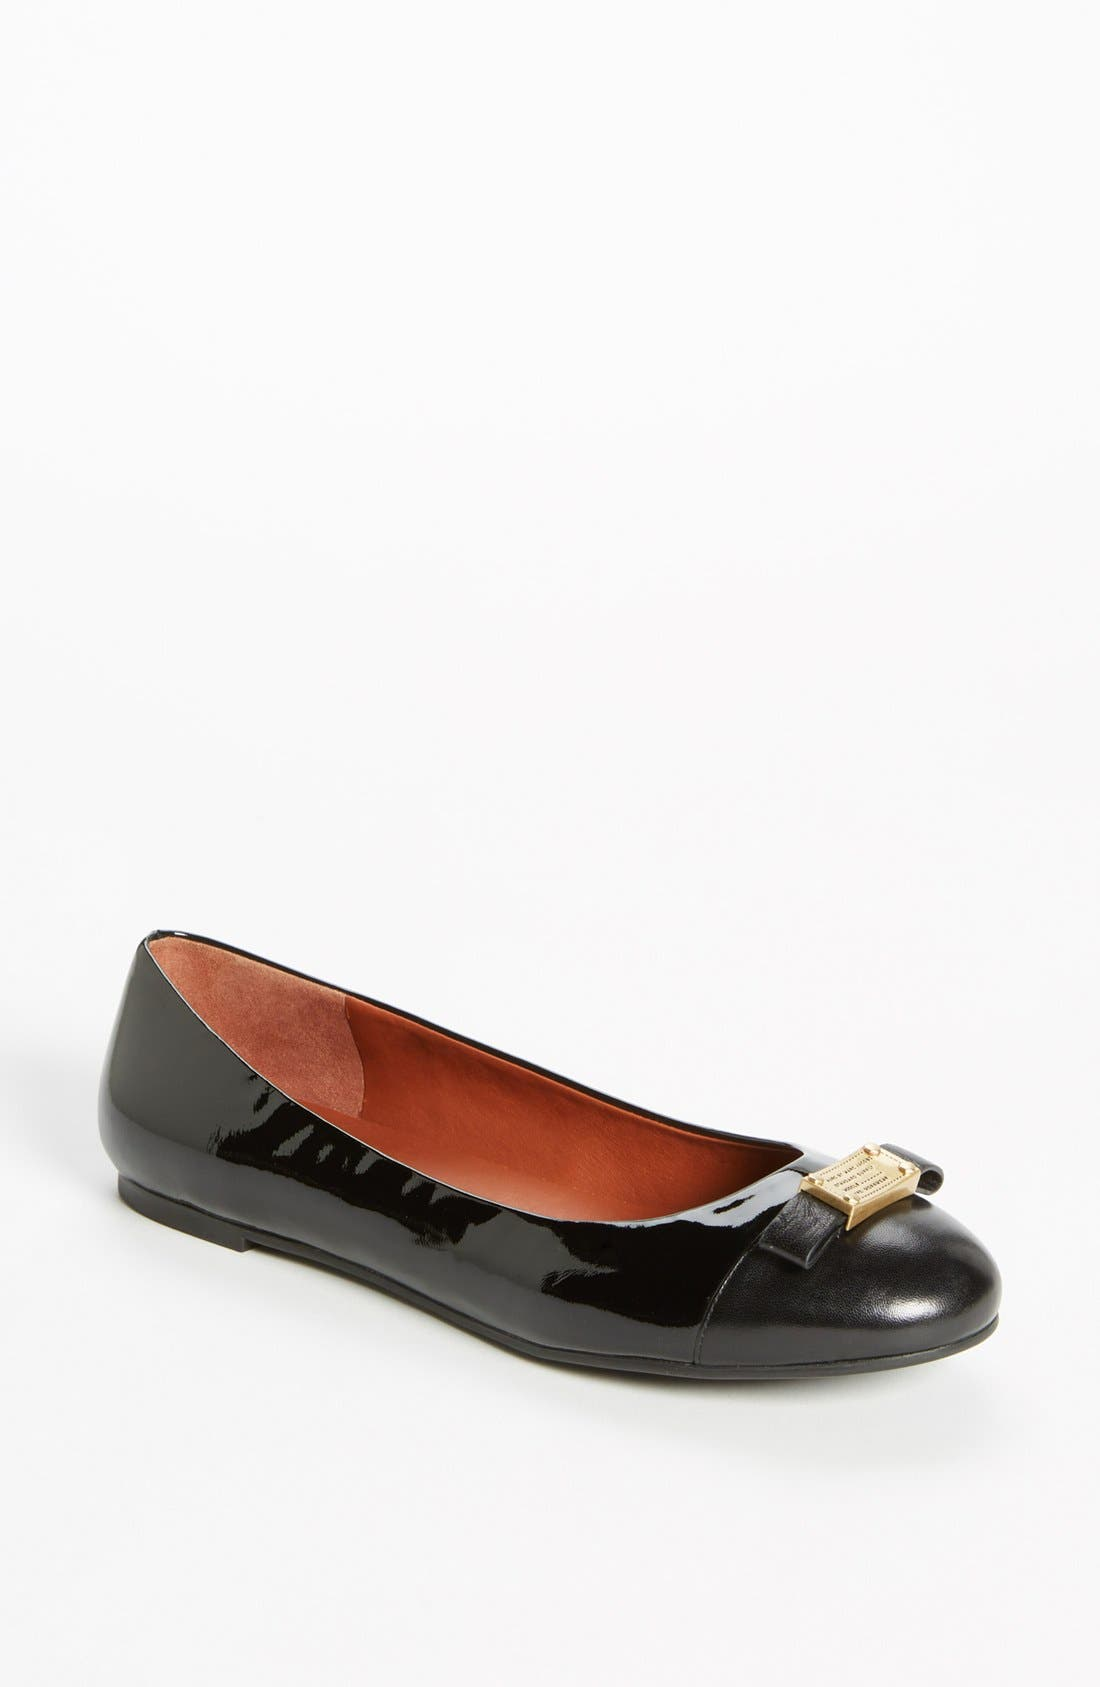 Main Image - MARC BY MARC JACOBS 'Tuxedo' Logo Plaque Ballerina Flat